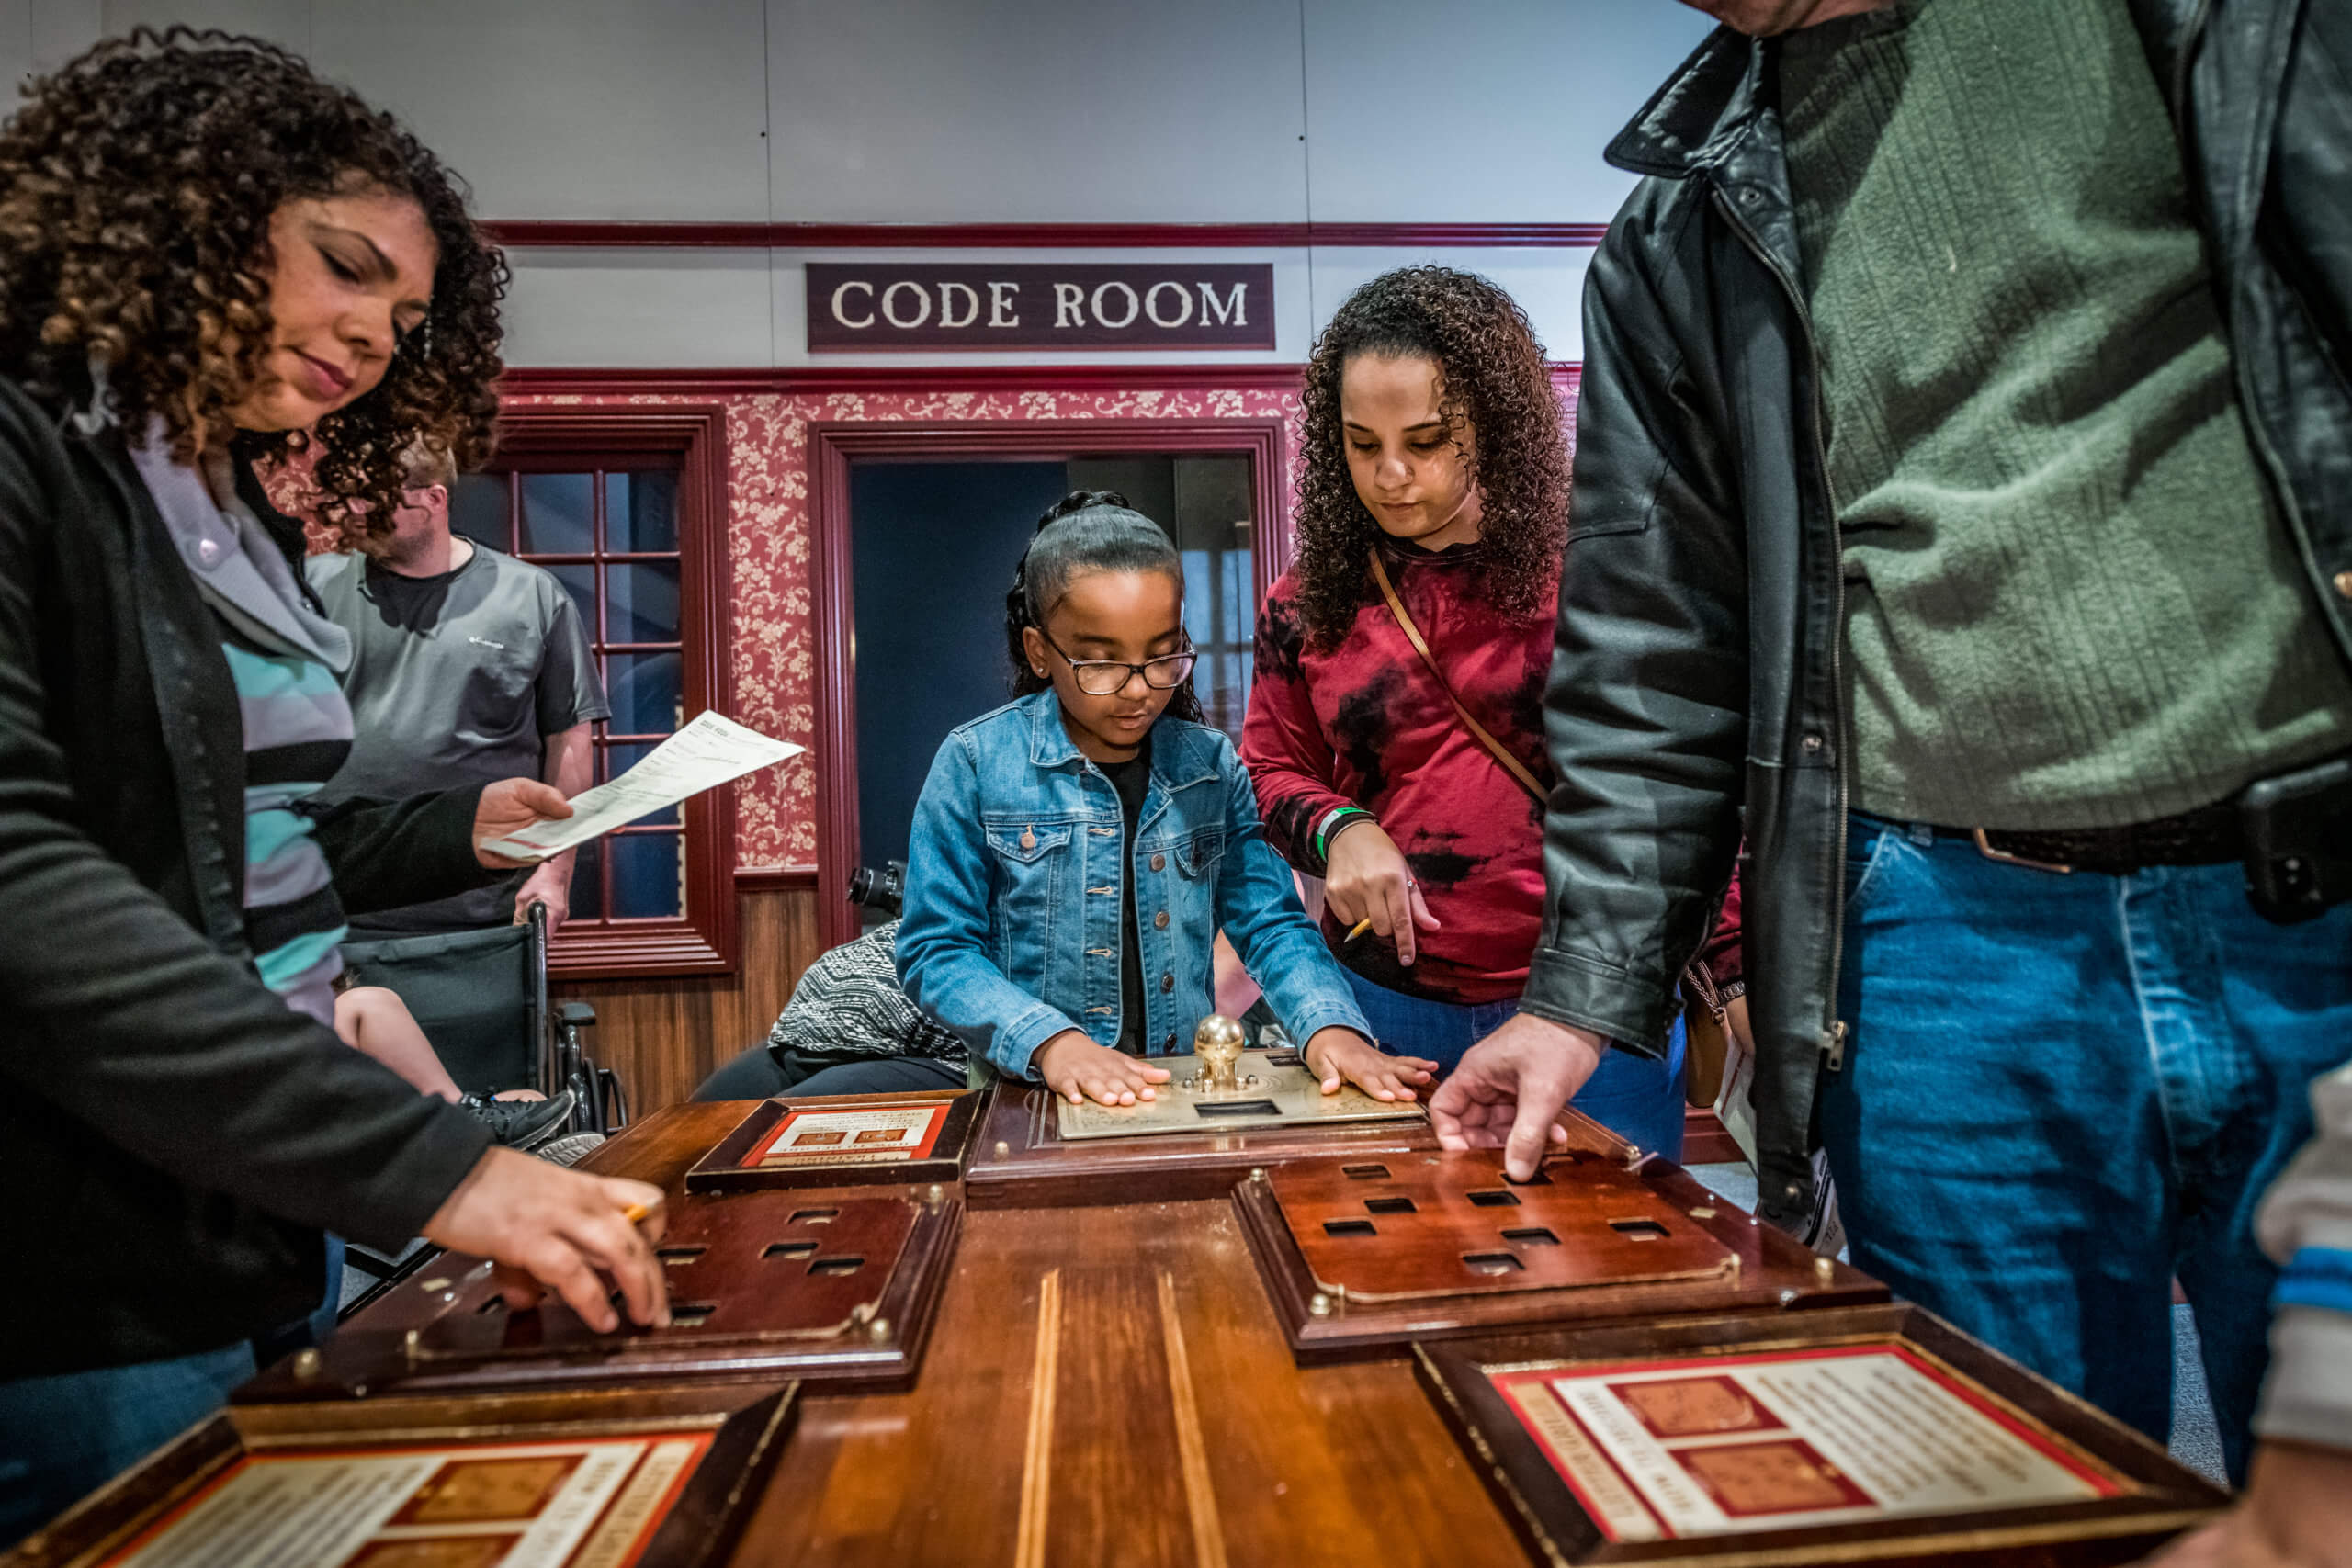 a group of people around a table solving a puzzle